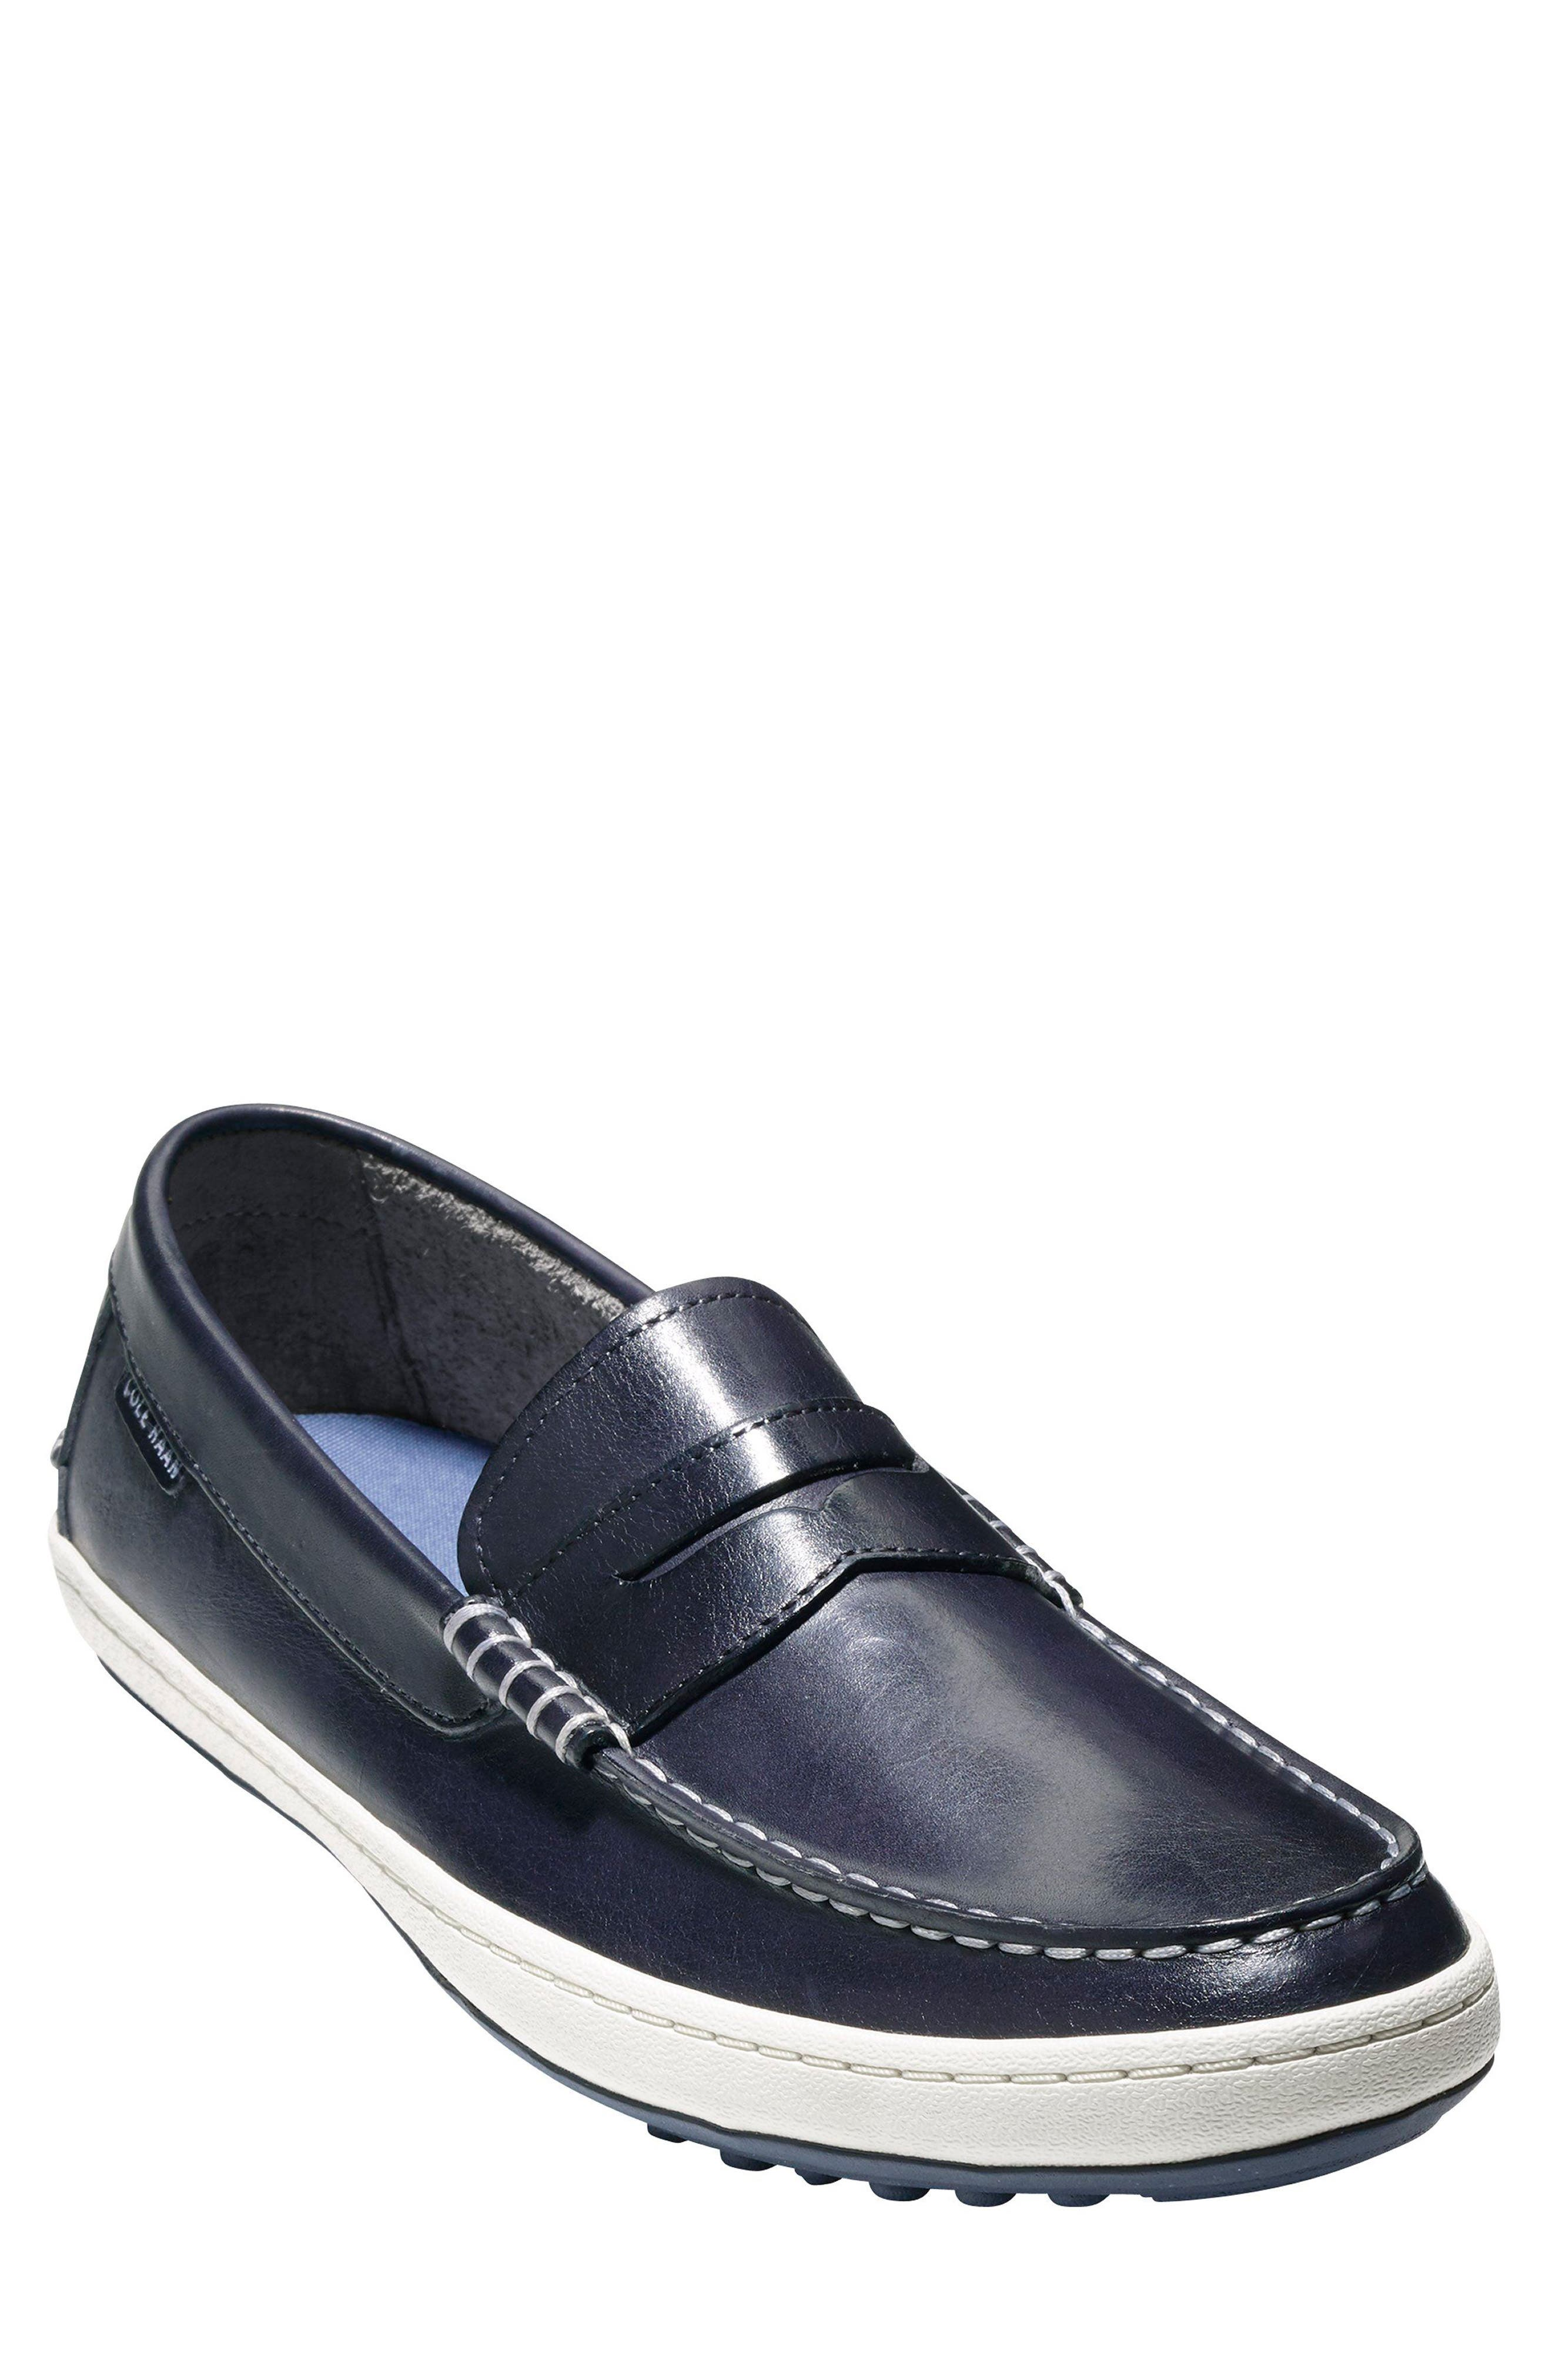 Main Image - Cole Haan 'Pinch Roadtrip' Penny Loafer (Men)